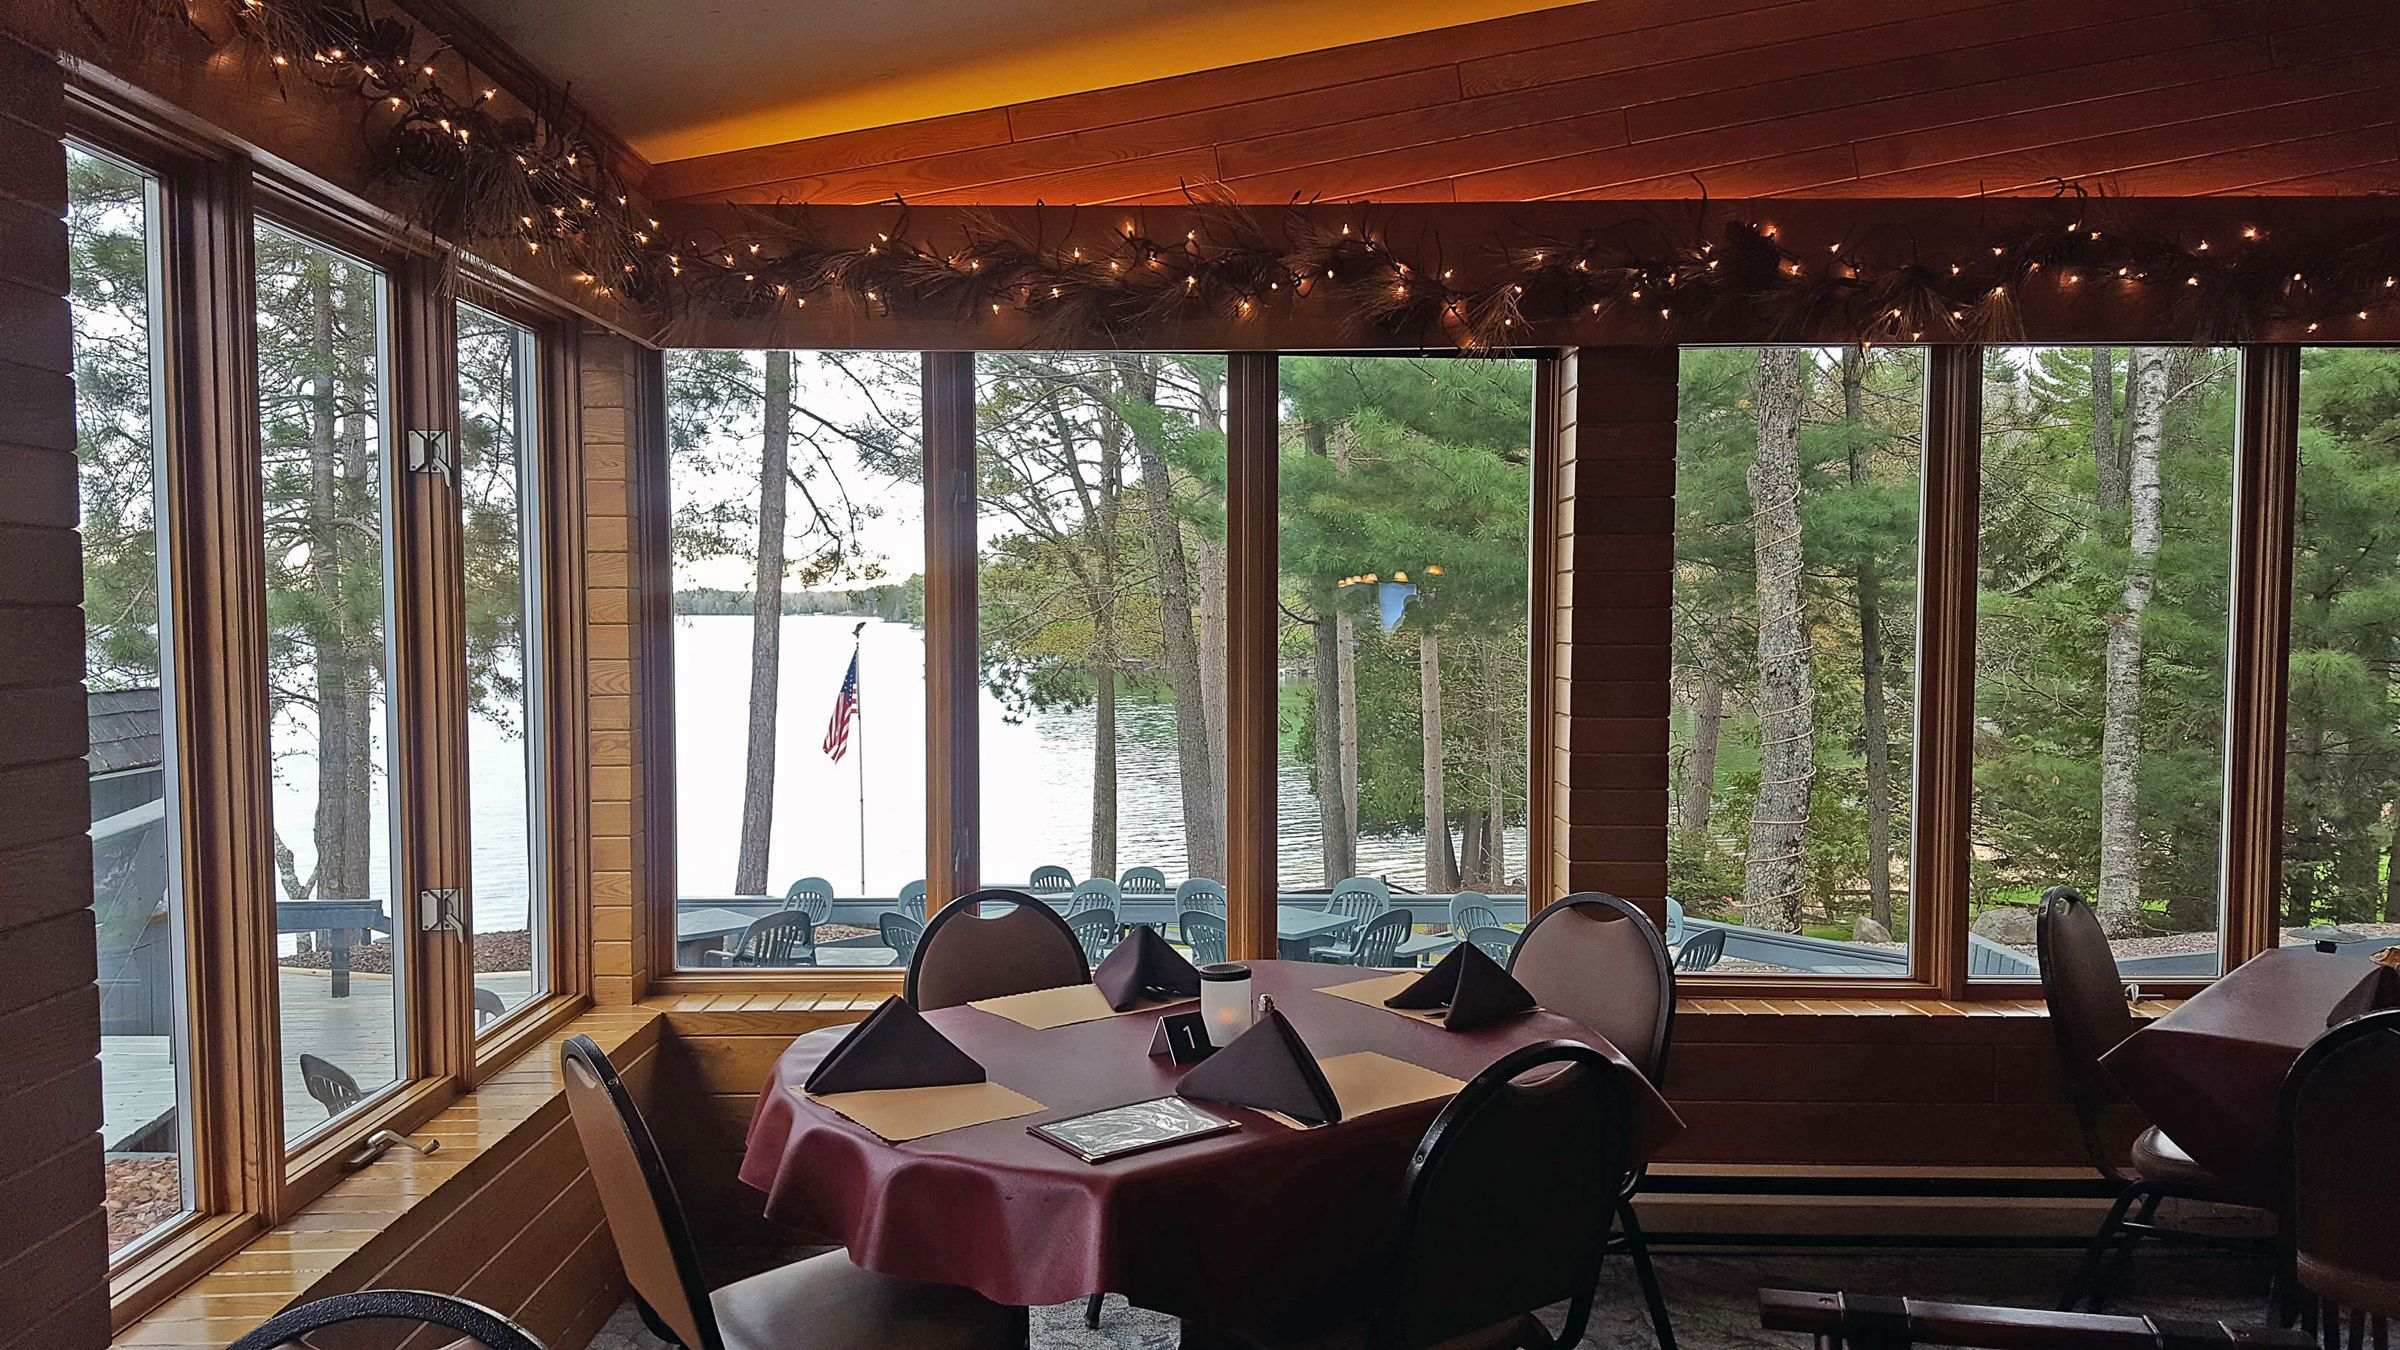 Maiden Lake Supper Club serves up steaks, fish and more at a picturesque perch on Maiden Lake near Mountain in Oconto County.